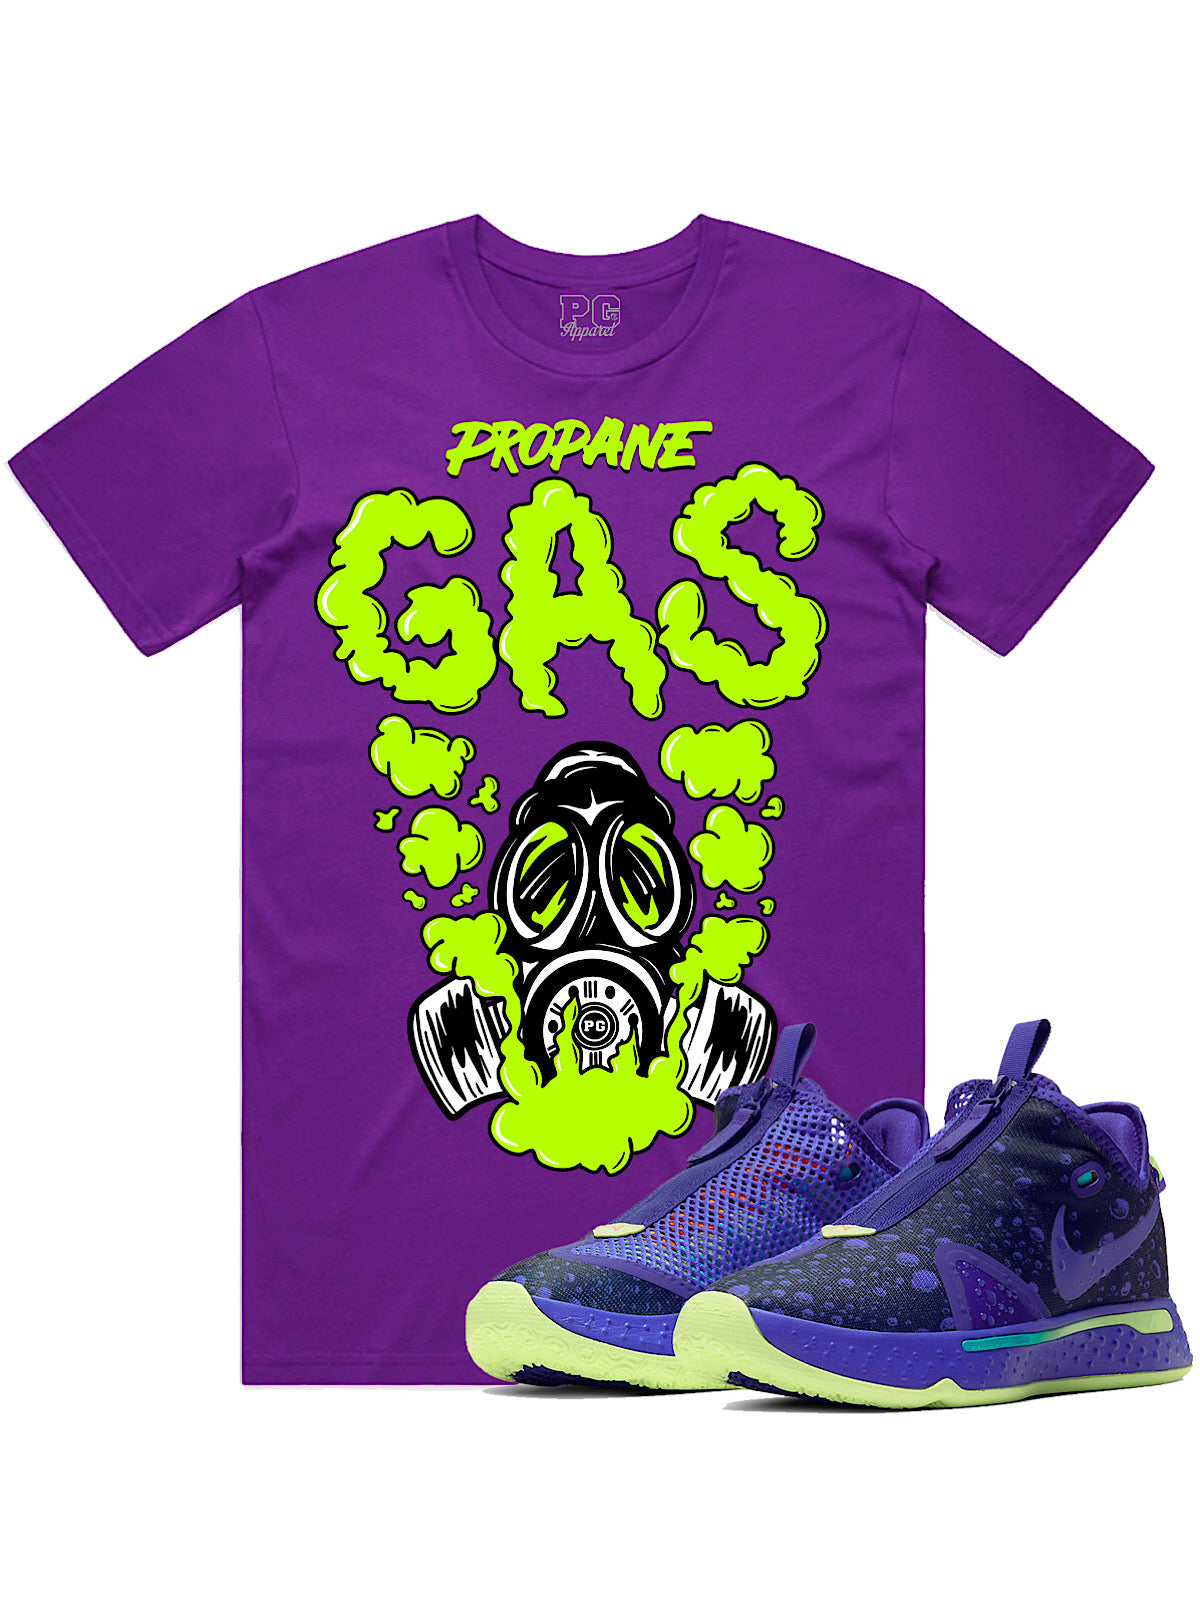 PG Apparel T-Shirt - Gas - Neon on Purple